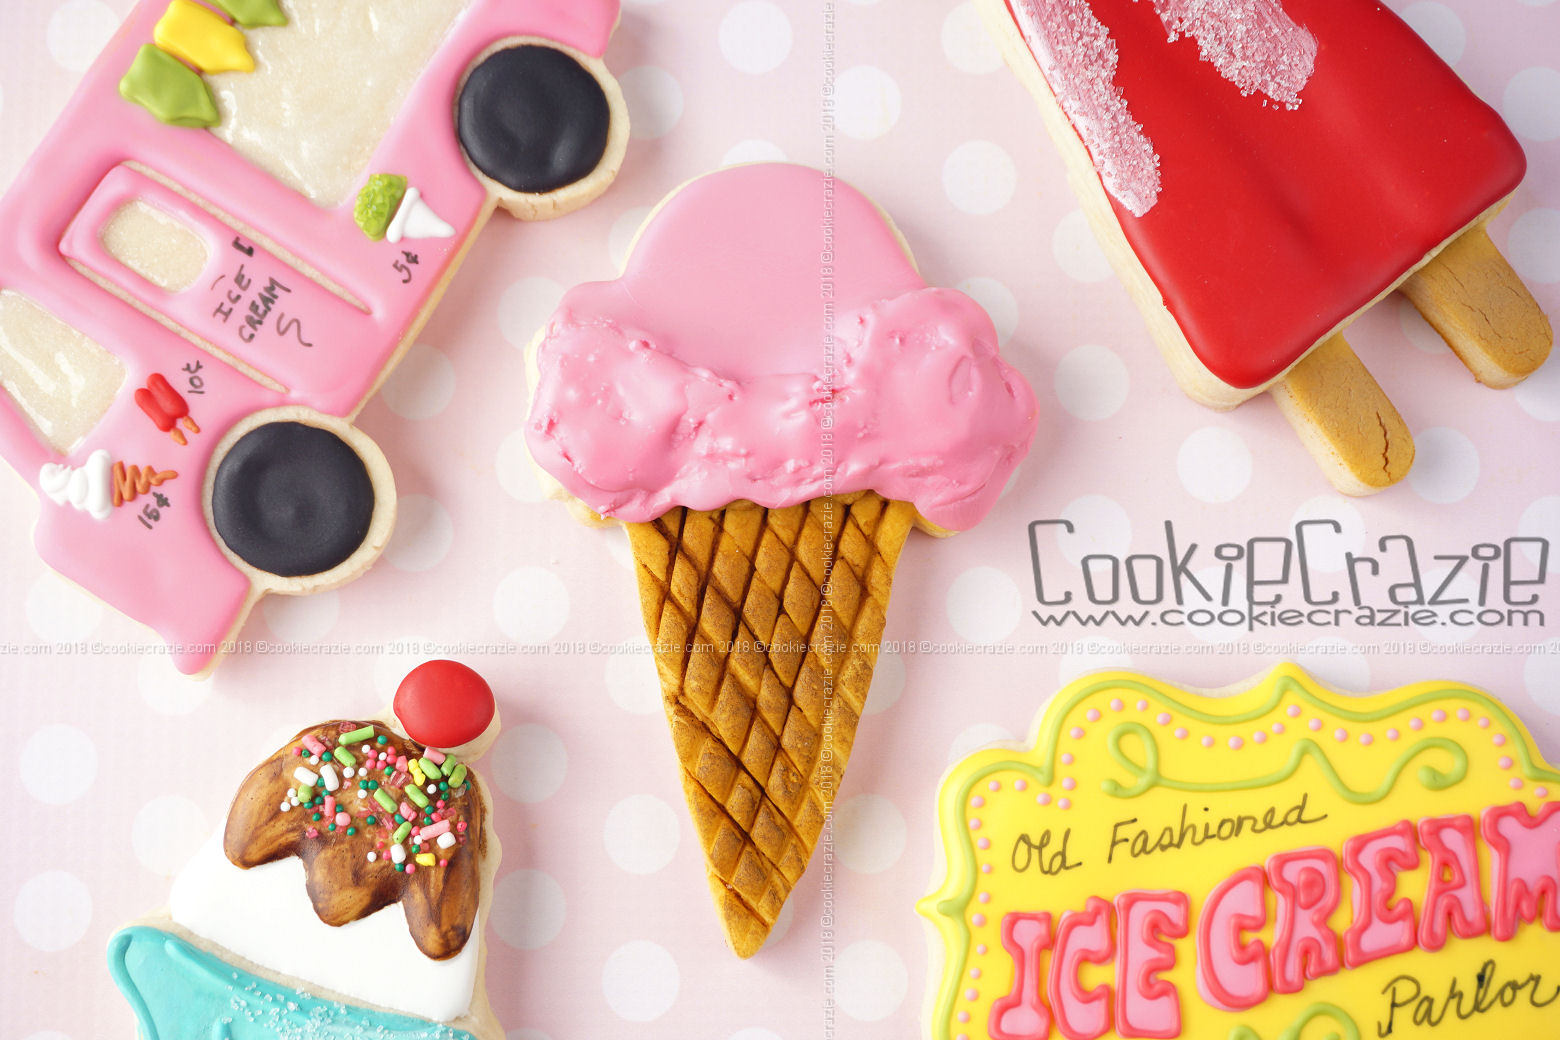 Single Scoop Waffle Ice Cream Cone Decorated Sugar Cookie YouTube video  HERE